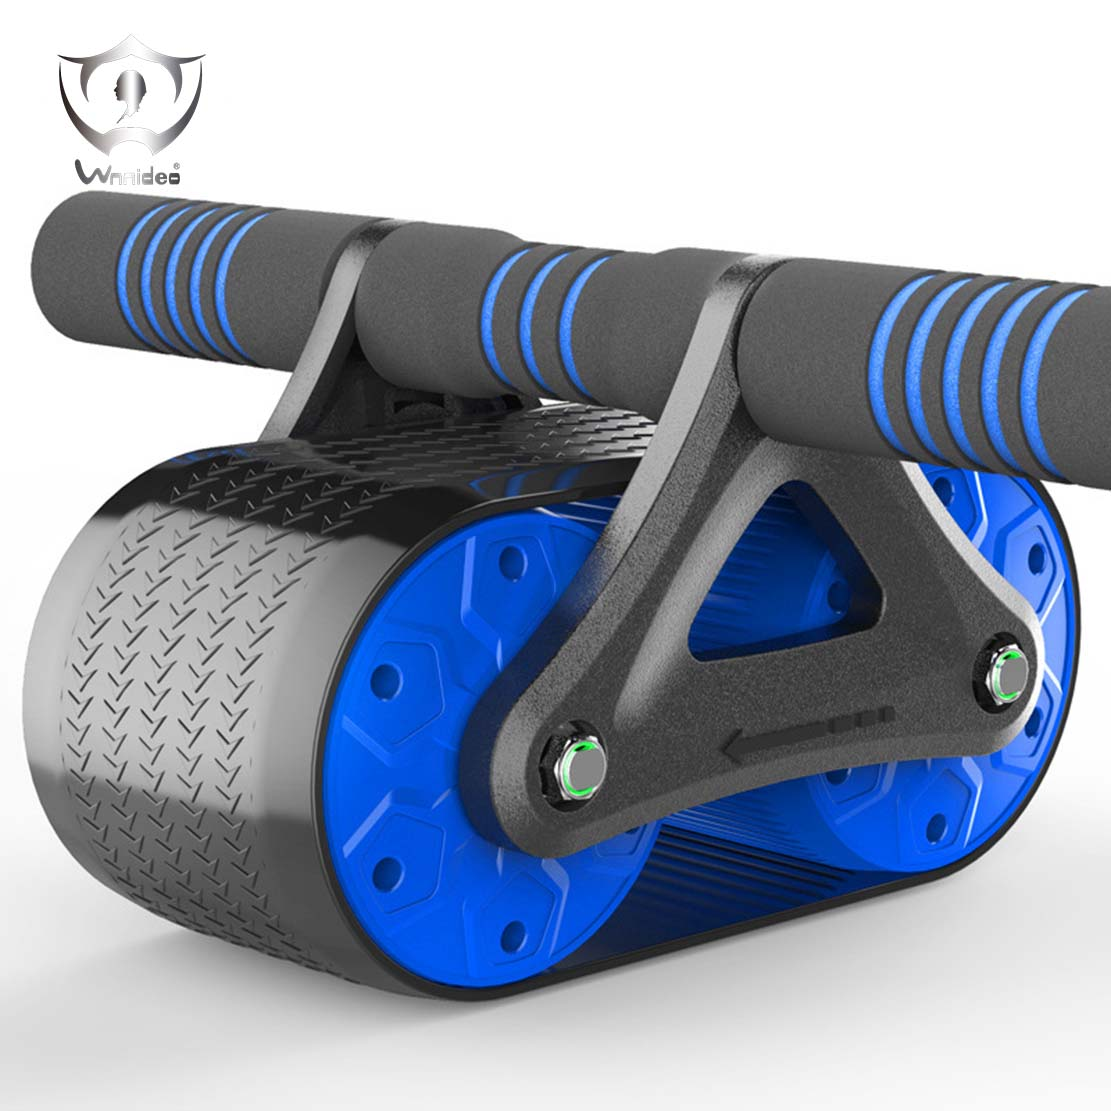 Double Abdominal Wheel Male Female Fitness Equipment Household Body-building Wheel Roller Reduce Belly Rebound ZS8-51